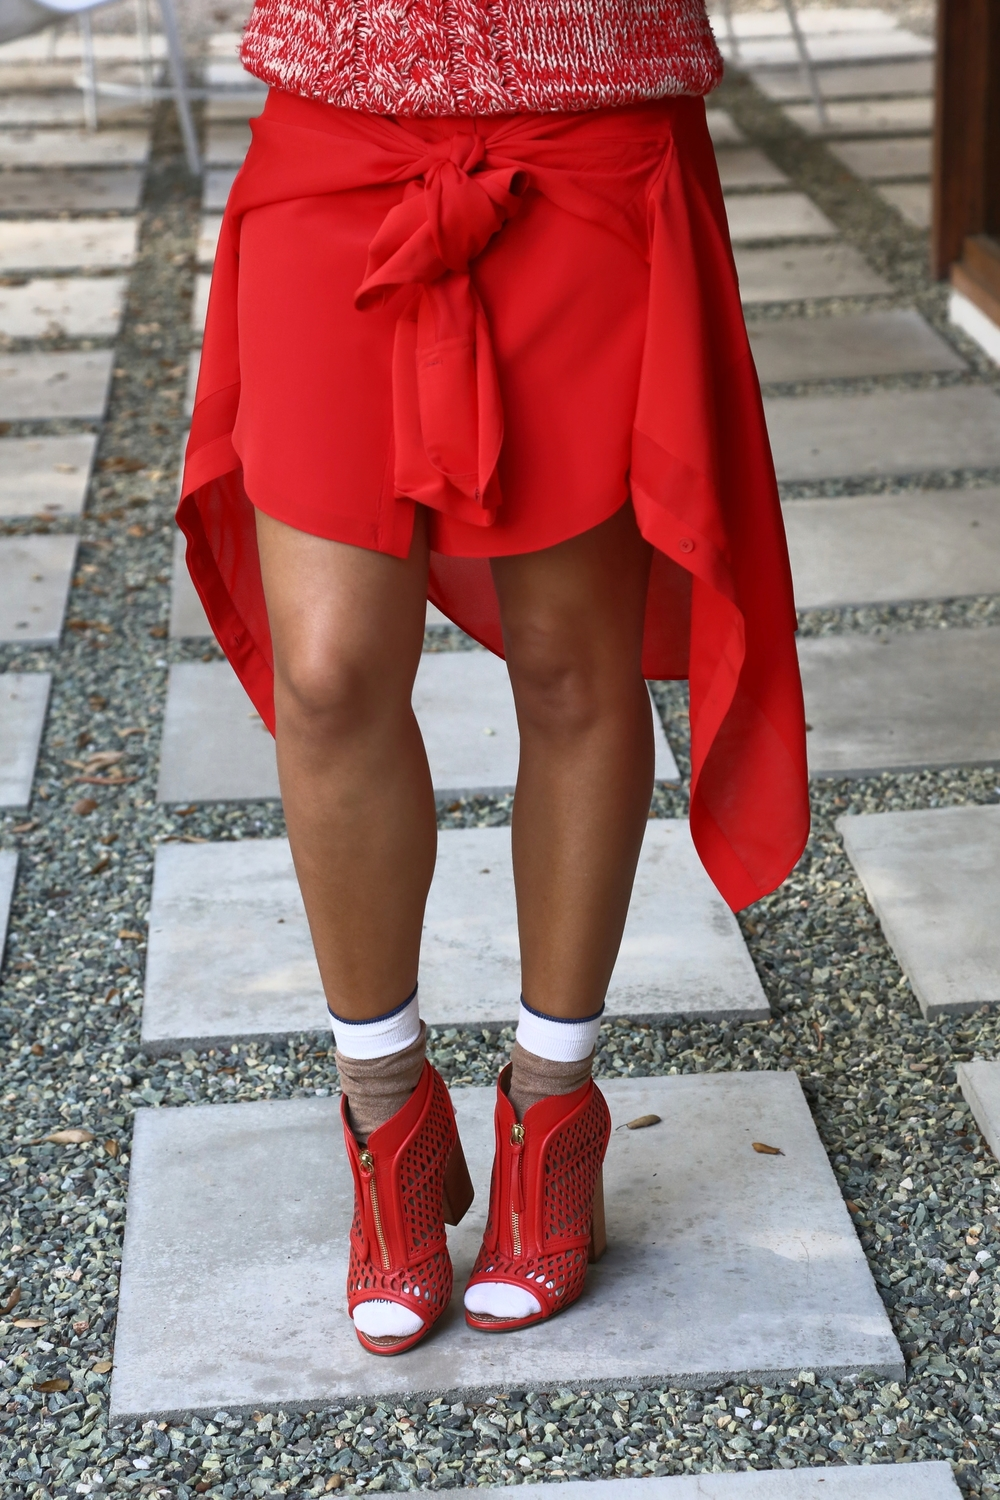 proenza-heels-alexander-wang-shirtdress-los-angeles.jpg